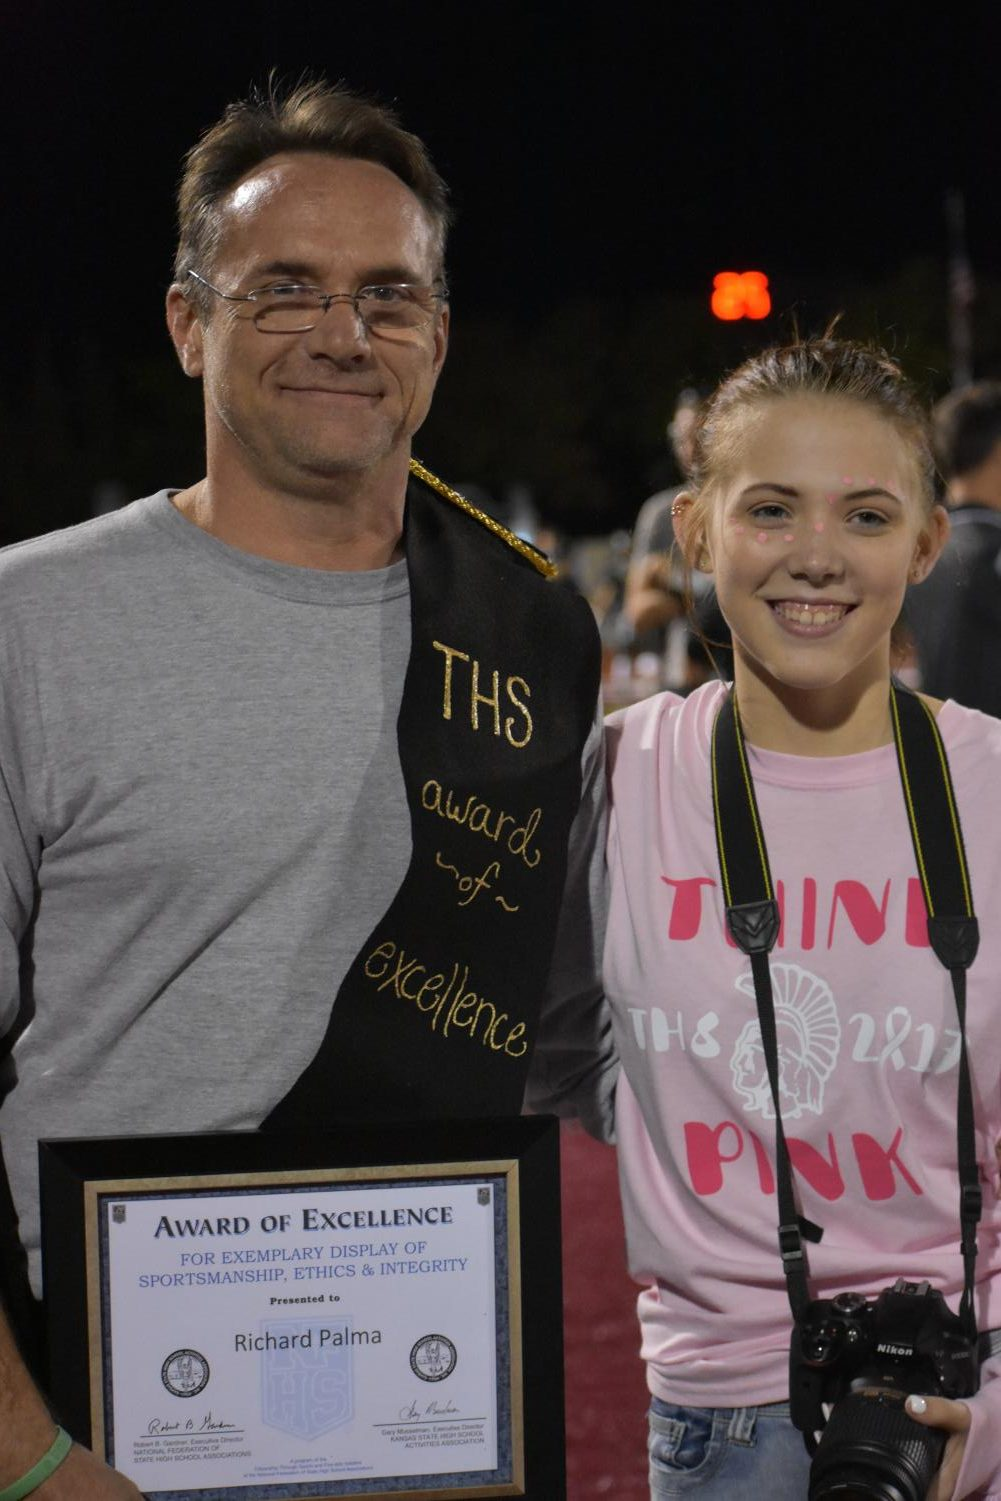 Teacher+Richard+Palma+smiles+at+the+camera+with+his+daughter%2C+Olivia+Palma%2C+after+receiving+the+Topeka+High+School+Award+of+Excellence.+